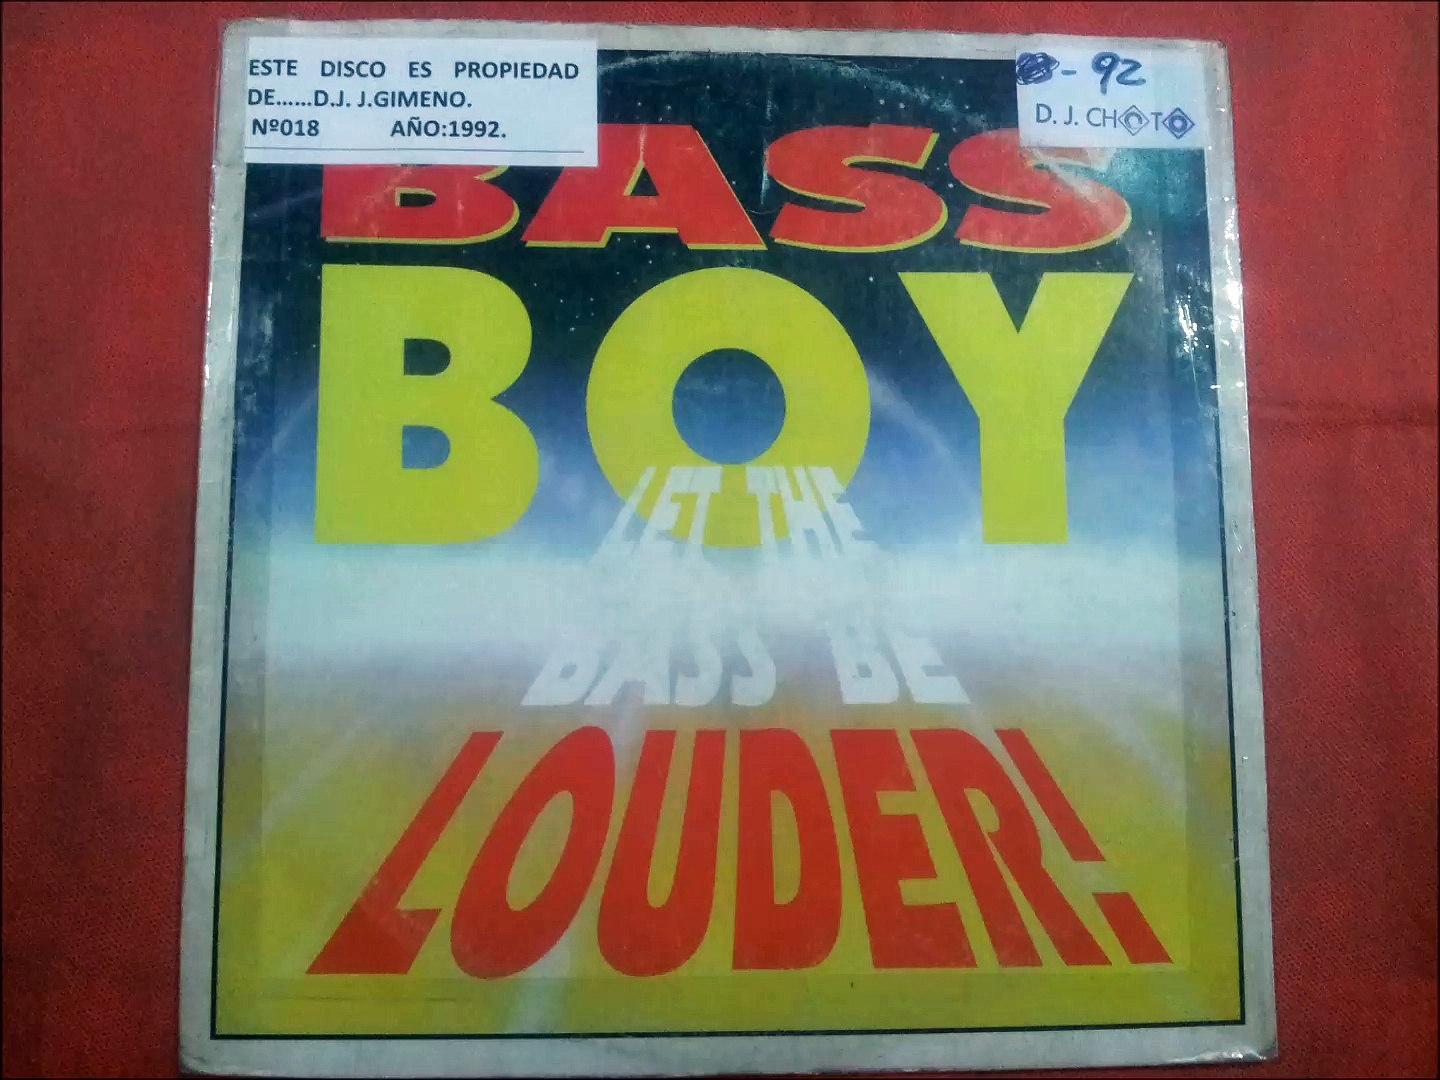 BASS BOY.(LET THE BASS BE LOUDER.(STUMPIN BASS MIX.)(12''.)(1992.)